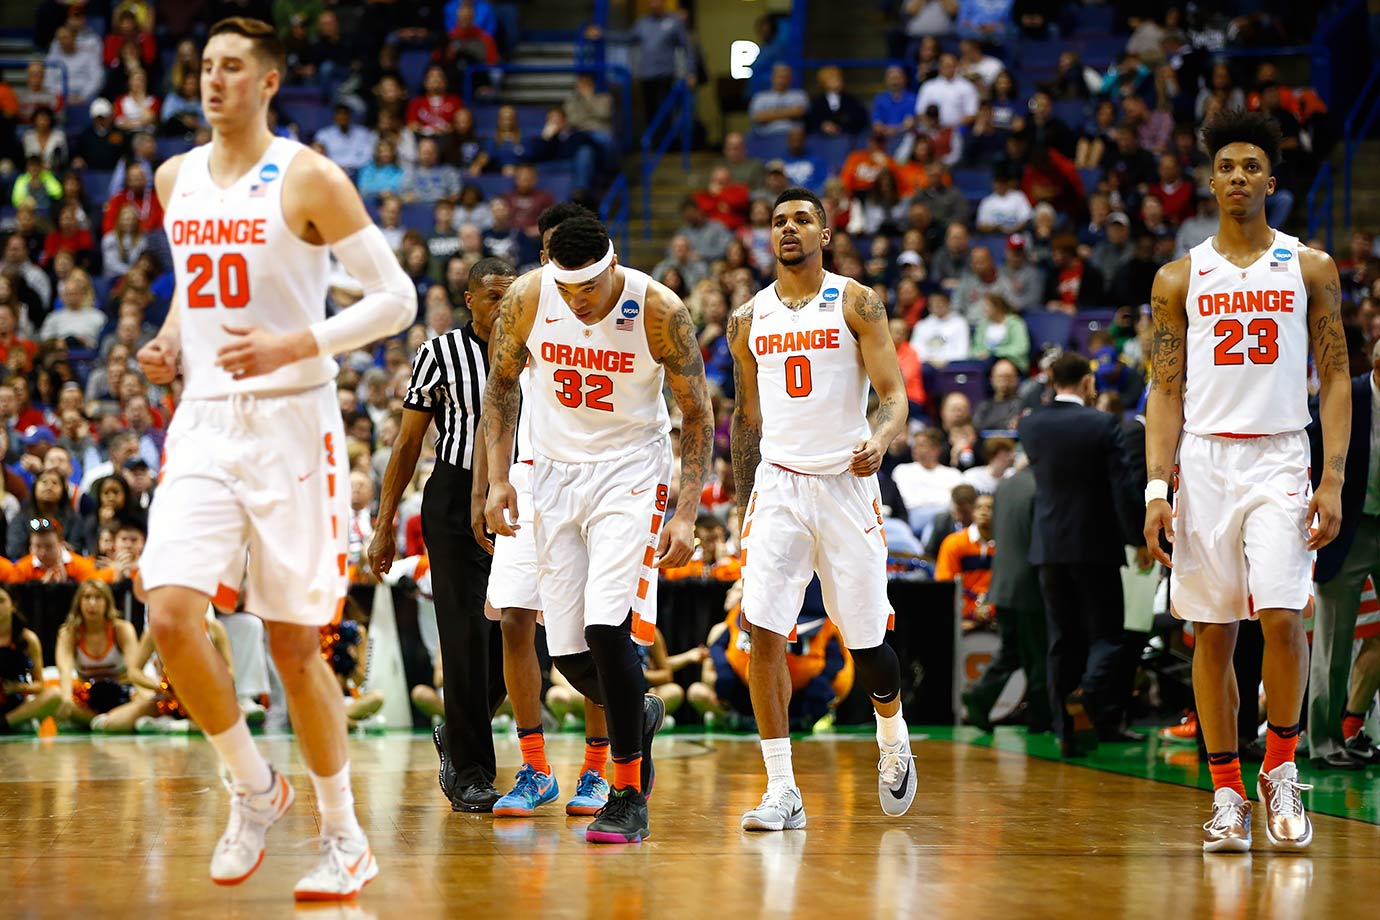 Let's be honest. The Orange are lucky to be here. They barely made it into the field, and had the most favorable draw of any team, with just Dayton and Middle Tennessee State standing between them and the Sweet 16. The duo of Domantas Sabonis and Kyle Wiltjer will be kryptonite to the 2-3 zone.